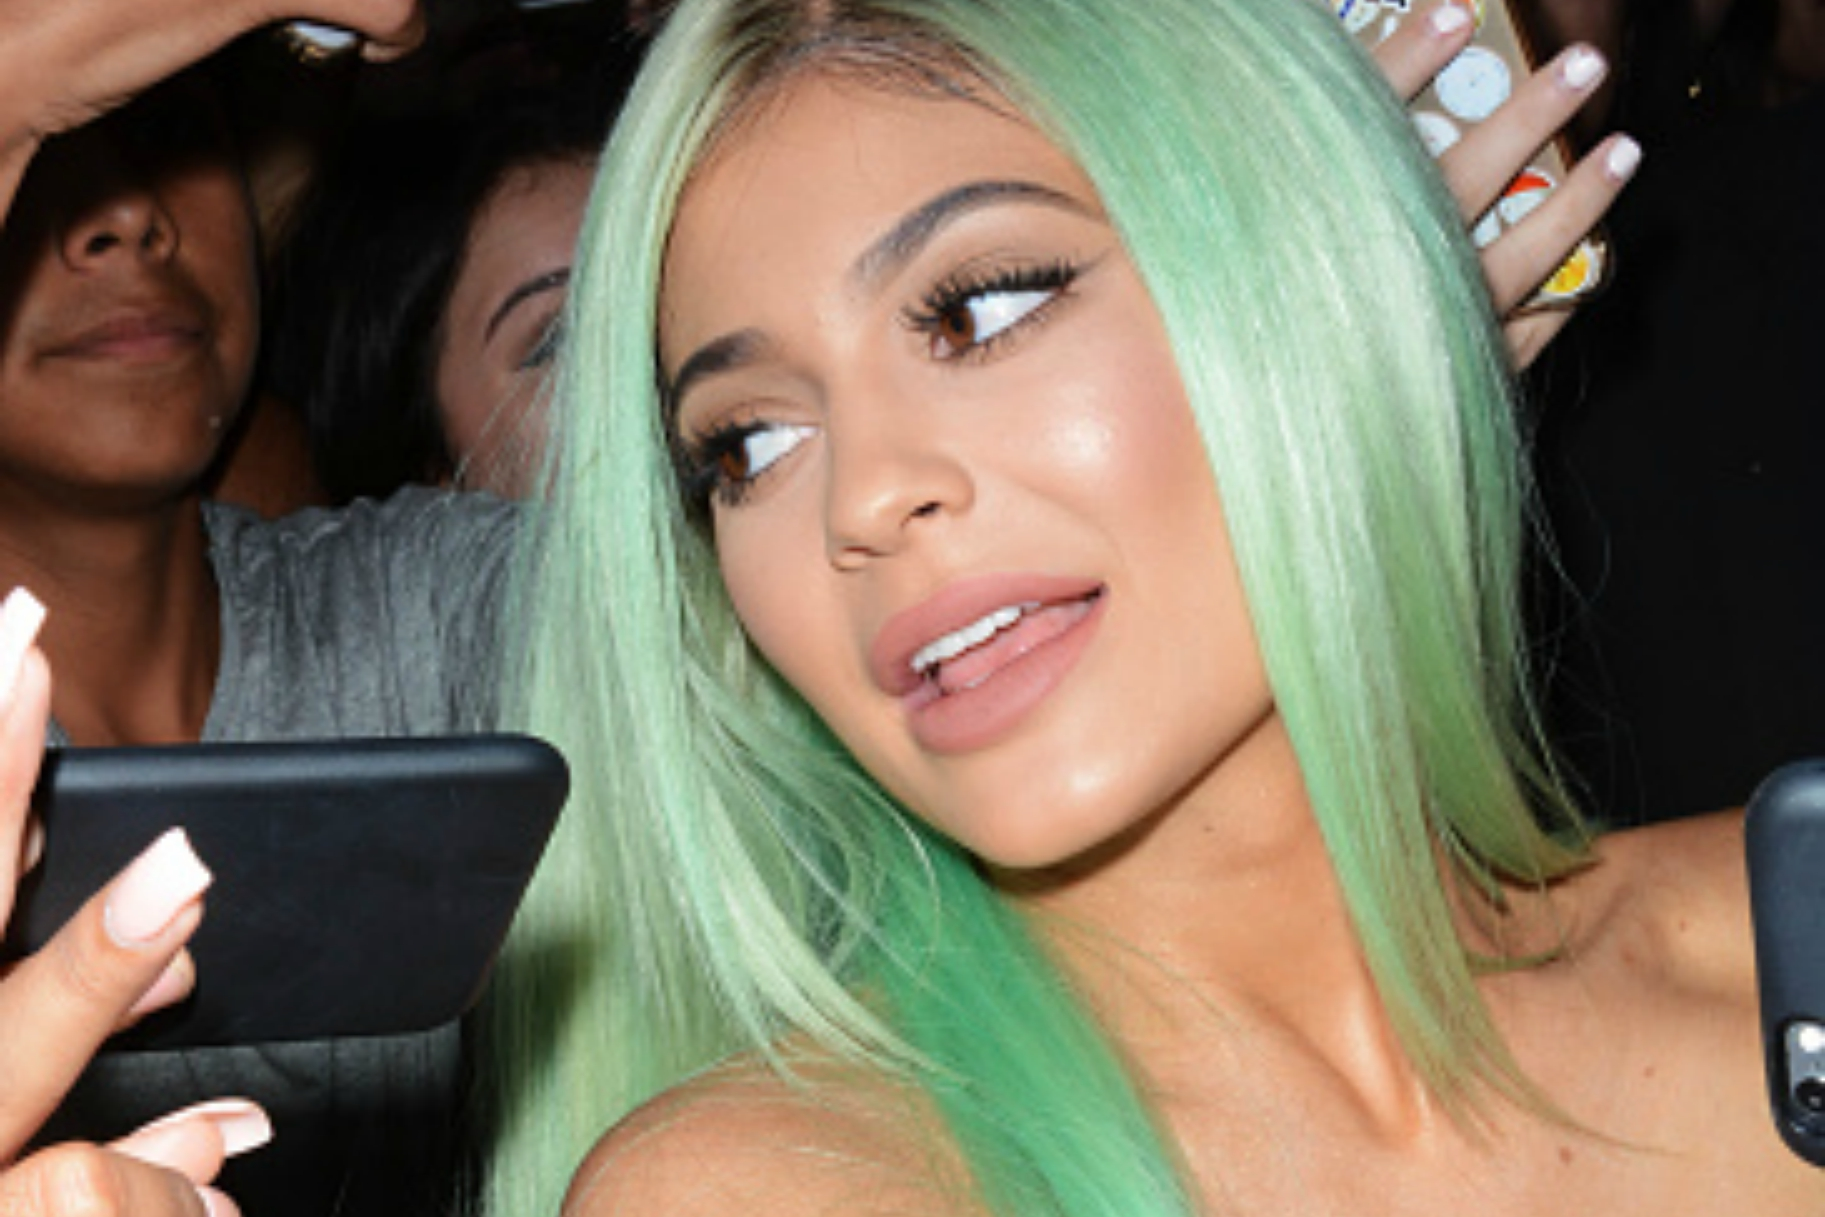 Kylie Jenner Got Her Wig Snatched At A Chris Brown Concert